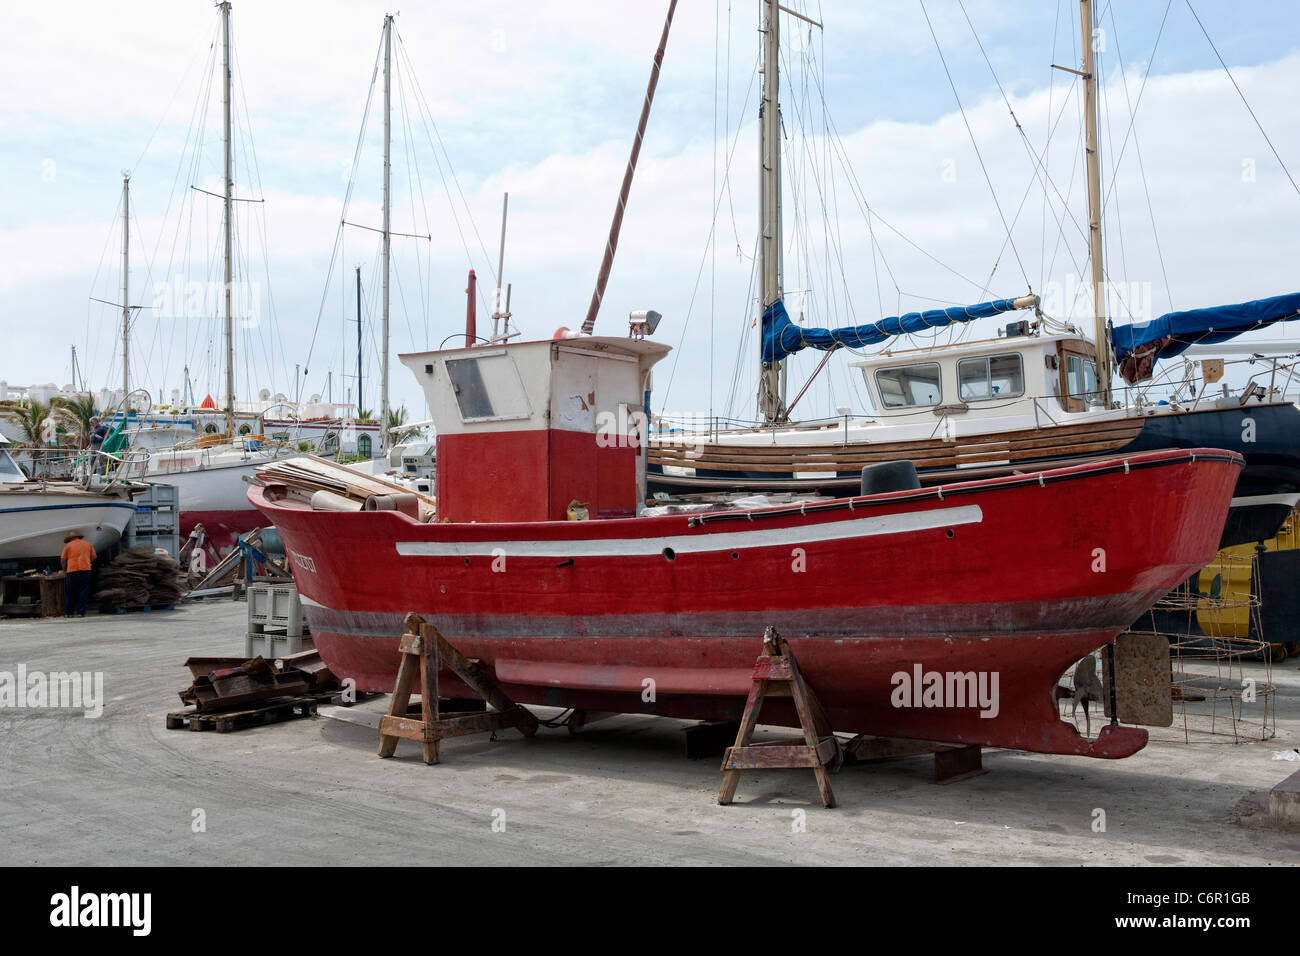 Boat being repaired in the dry dock in Puerto Mogan on Gran Canaria - Stock Image